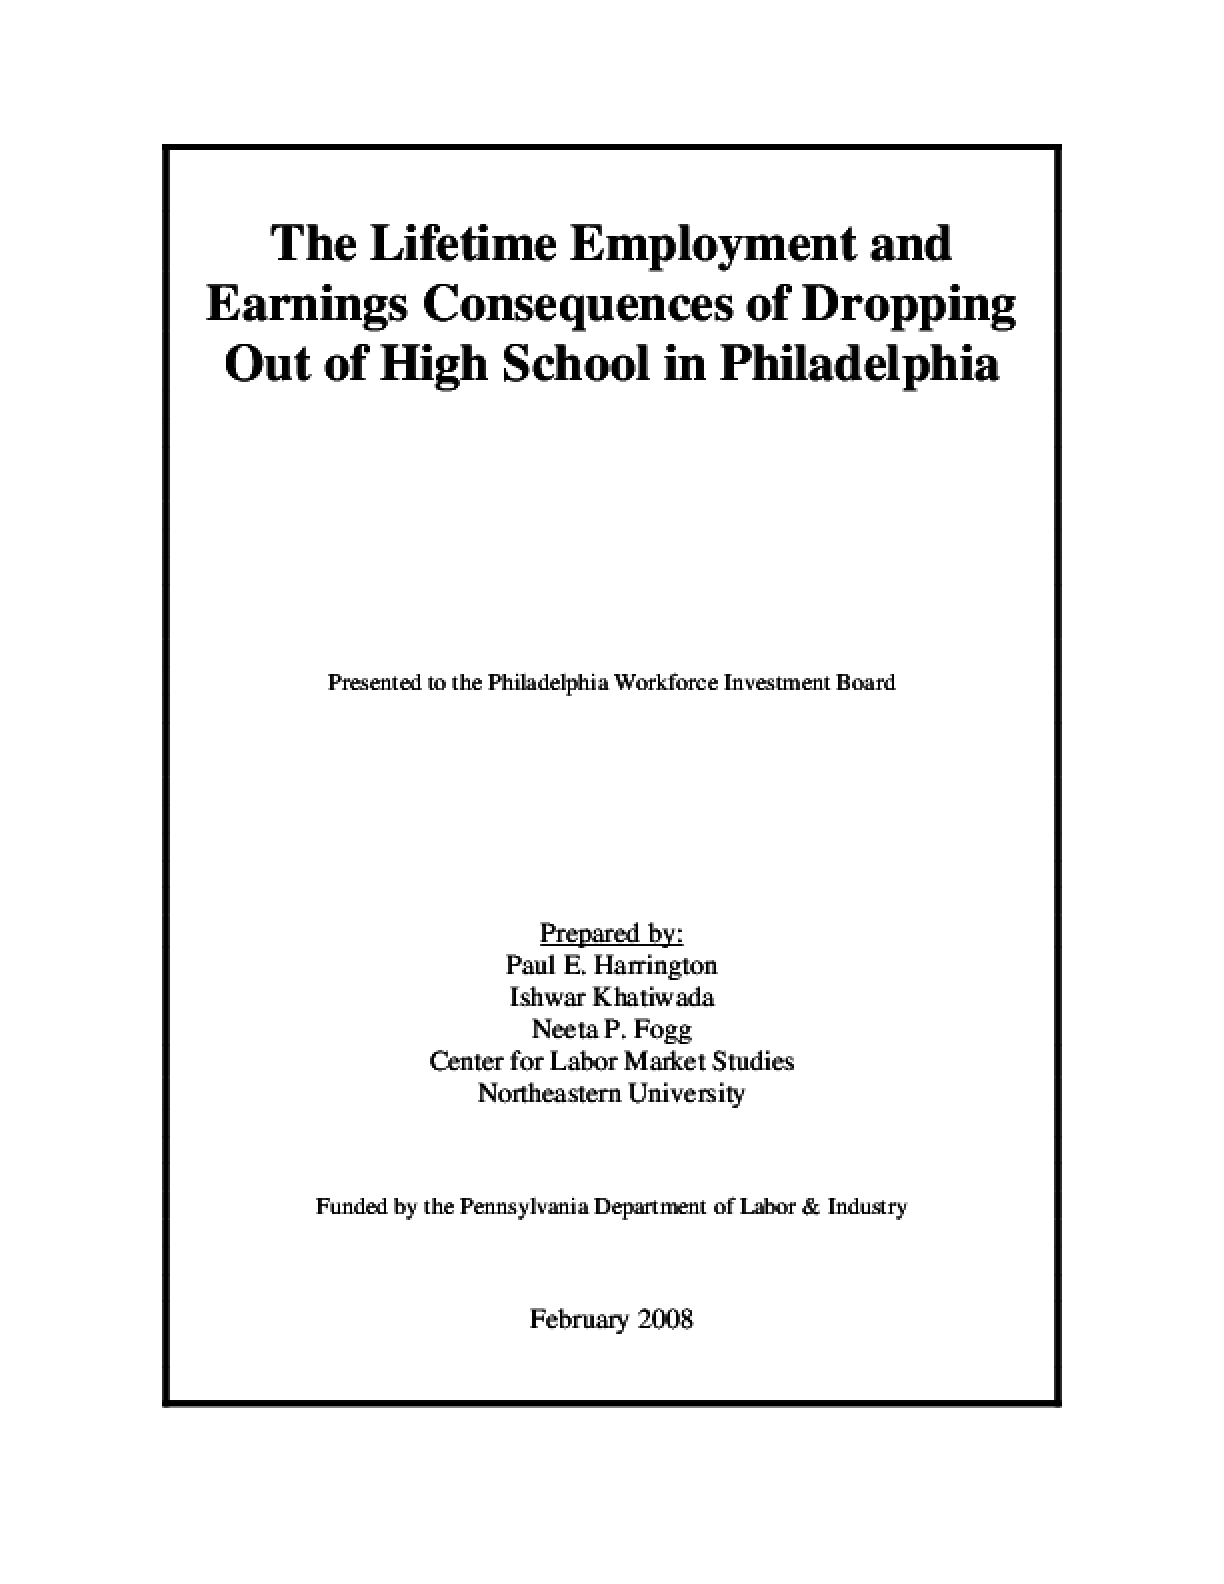 Lifetime Employment and Earnings Consequences of Dropping Out of High School in Philadelphia, The